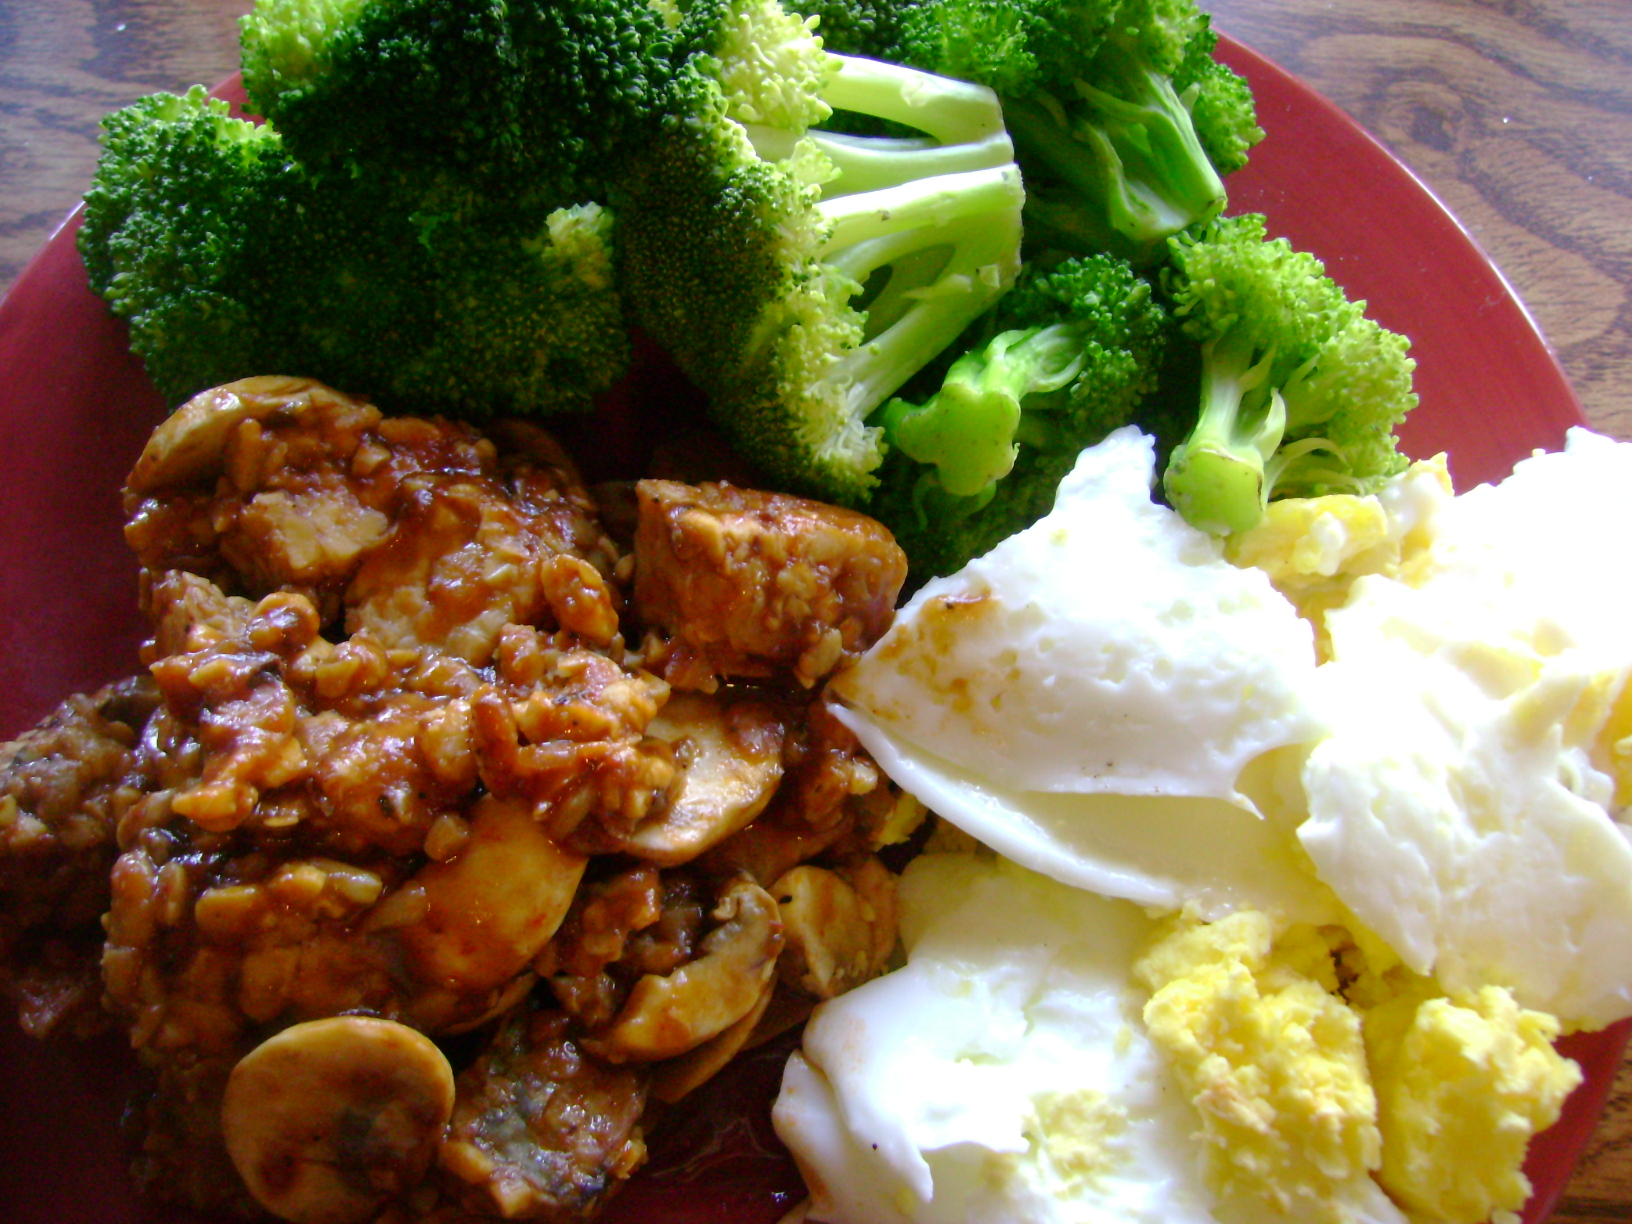 Vegan Tempeh Steak And Eggs With Broccoli